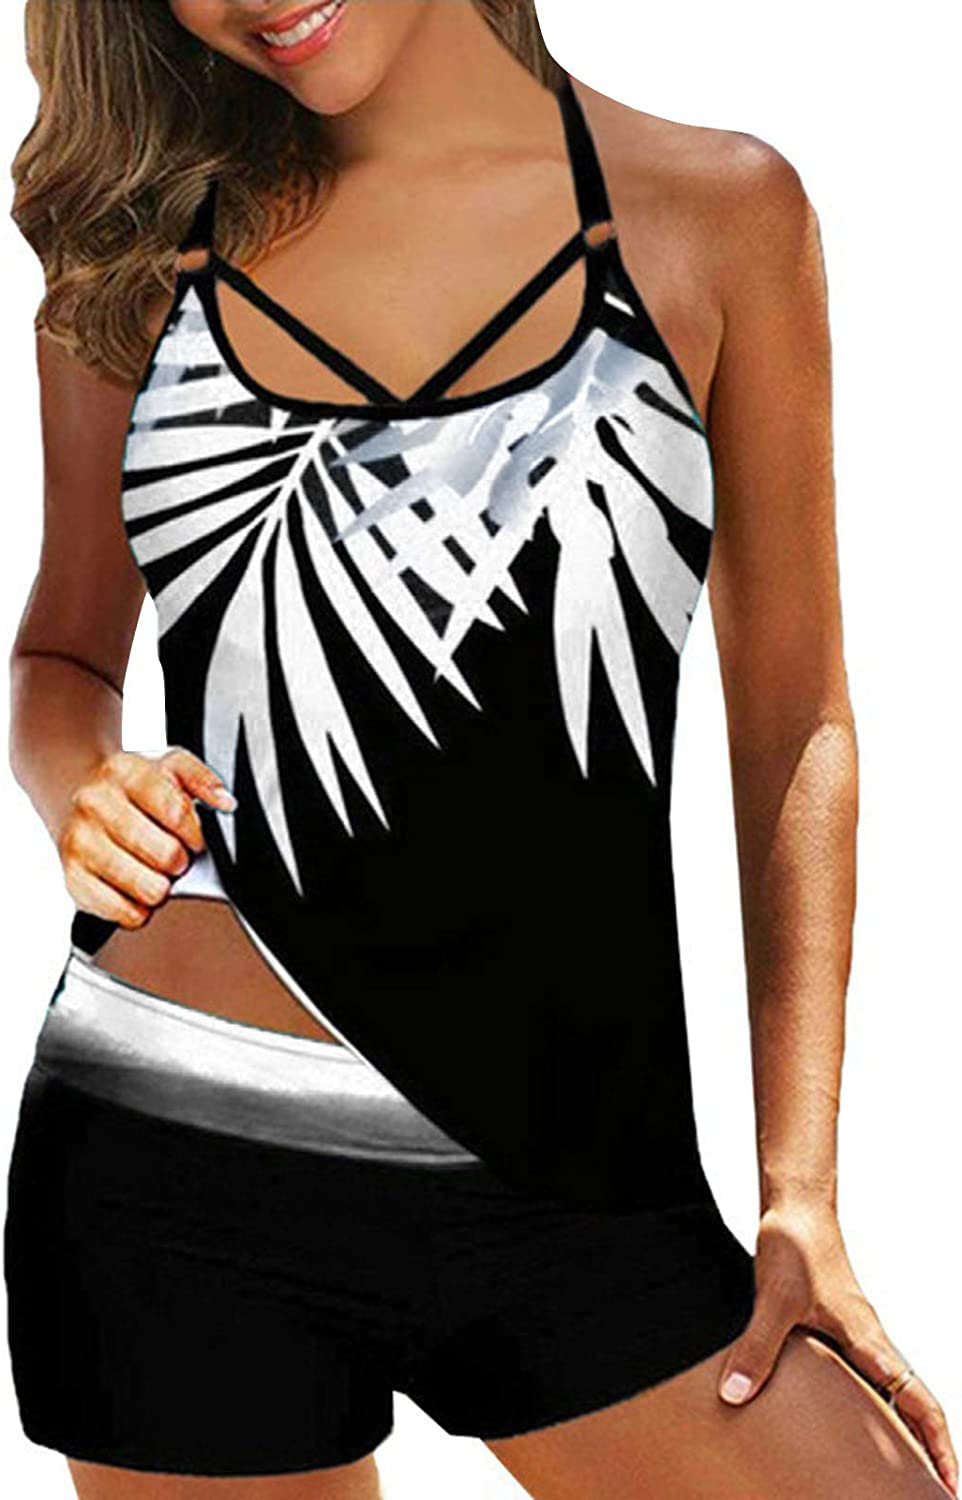 AODONG Swimsuit for Women Tankini Two Piece Print Strappy Back Swimsuits Swimdress Bathing Suits with Shorts